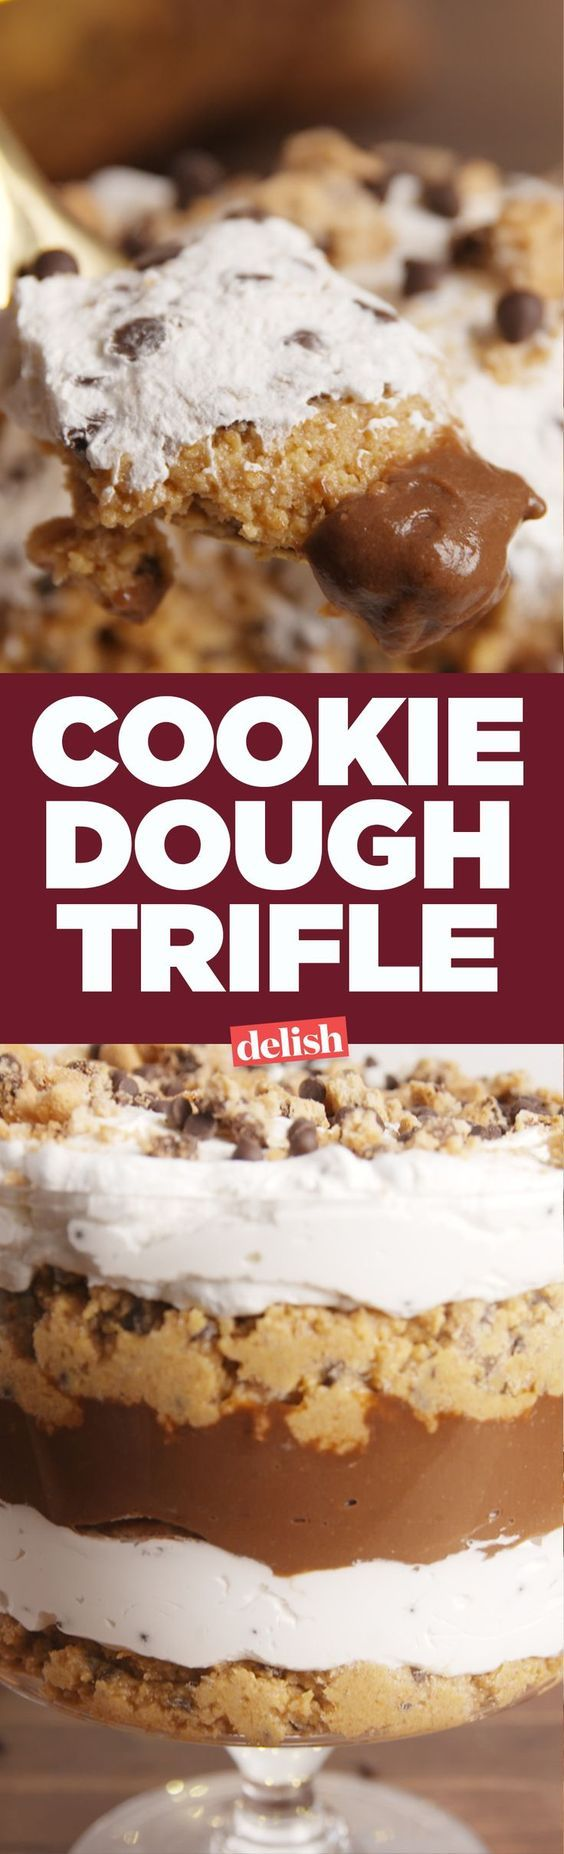 This Cookie Dough Trifle uses a brilliant hack to make cookie dough.